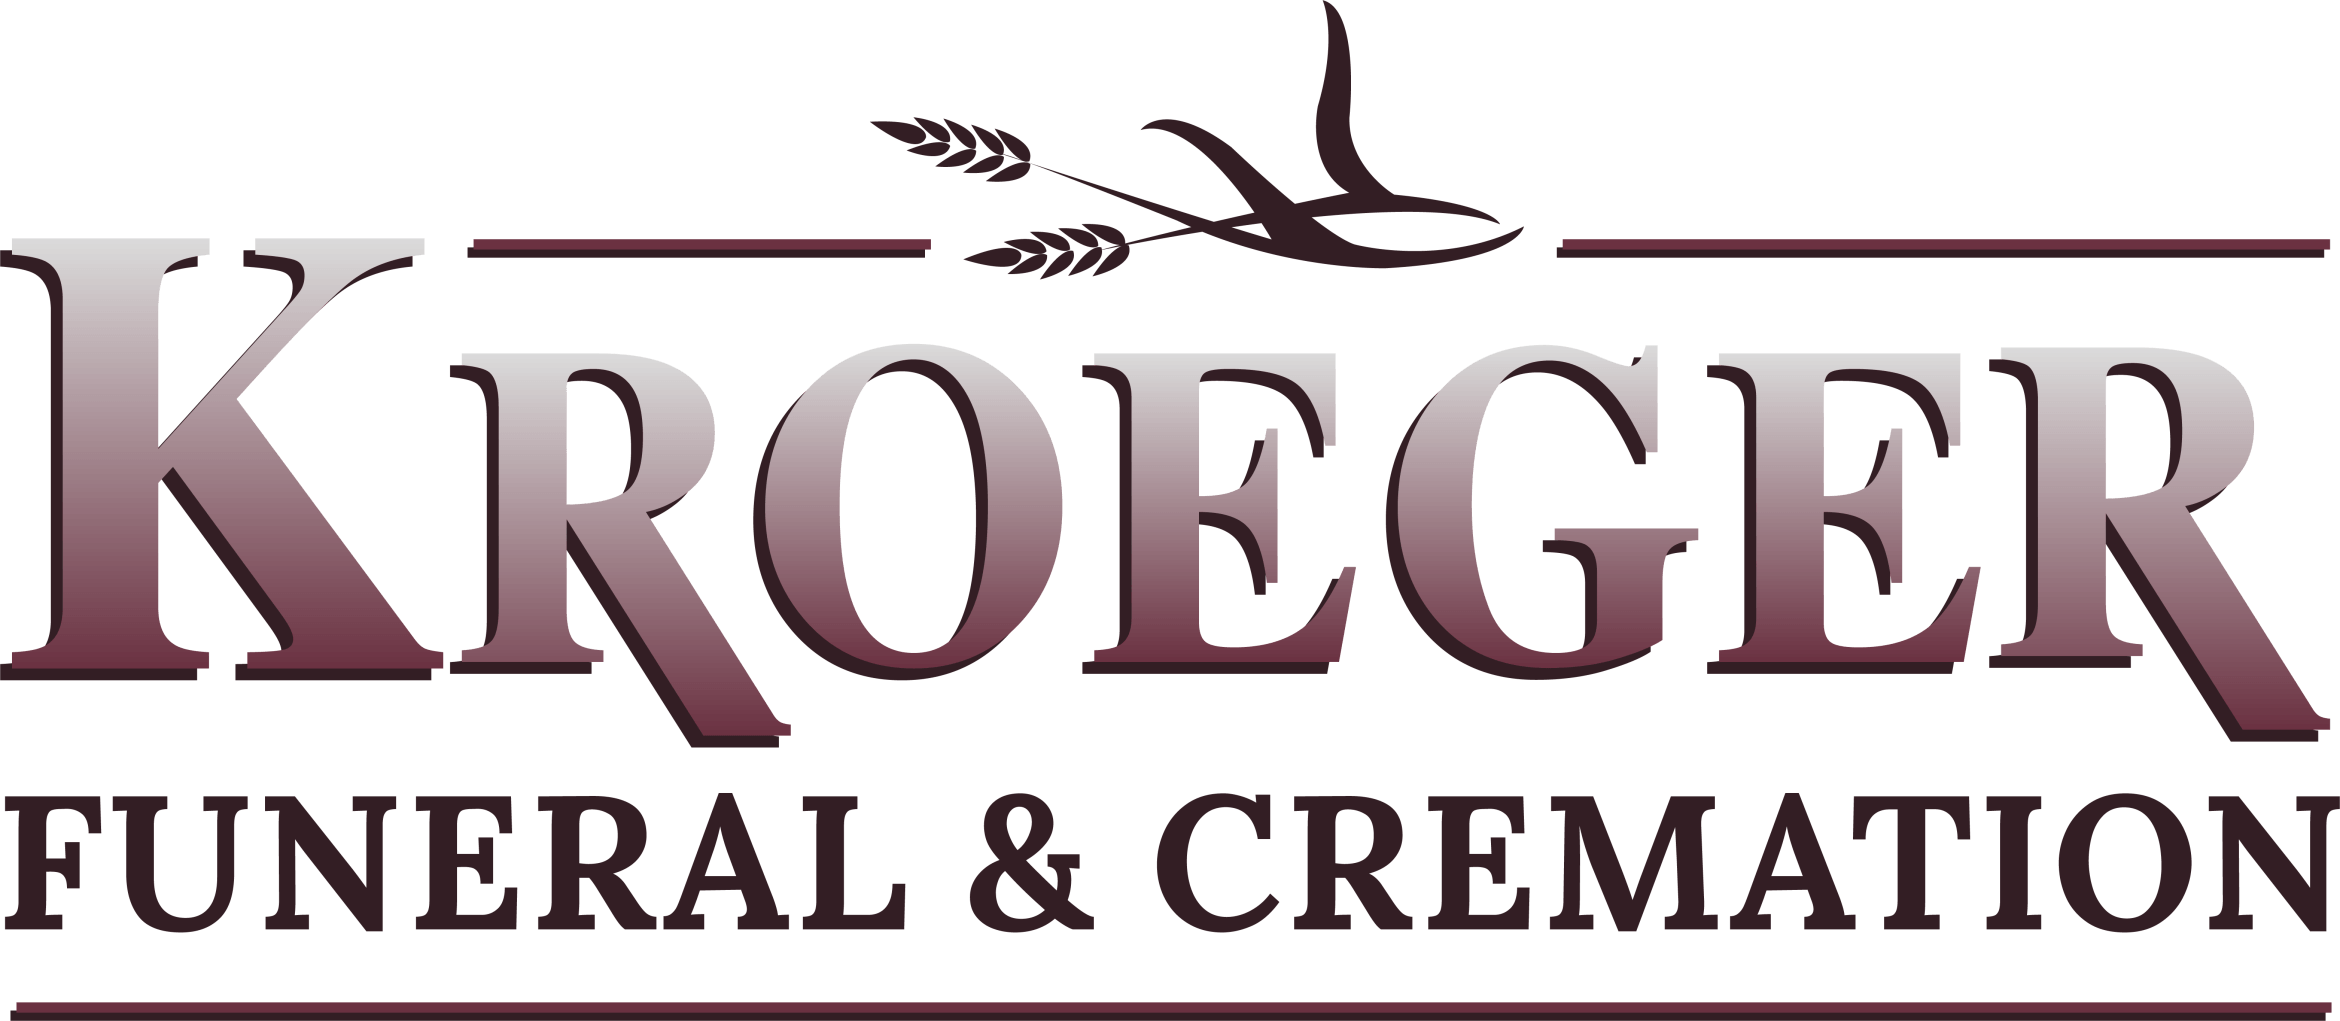 Kroeger Funeral Home Logansport In Funeral Home And Cremation